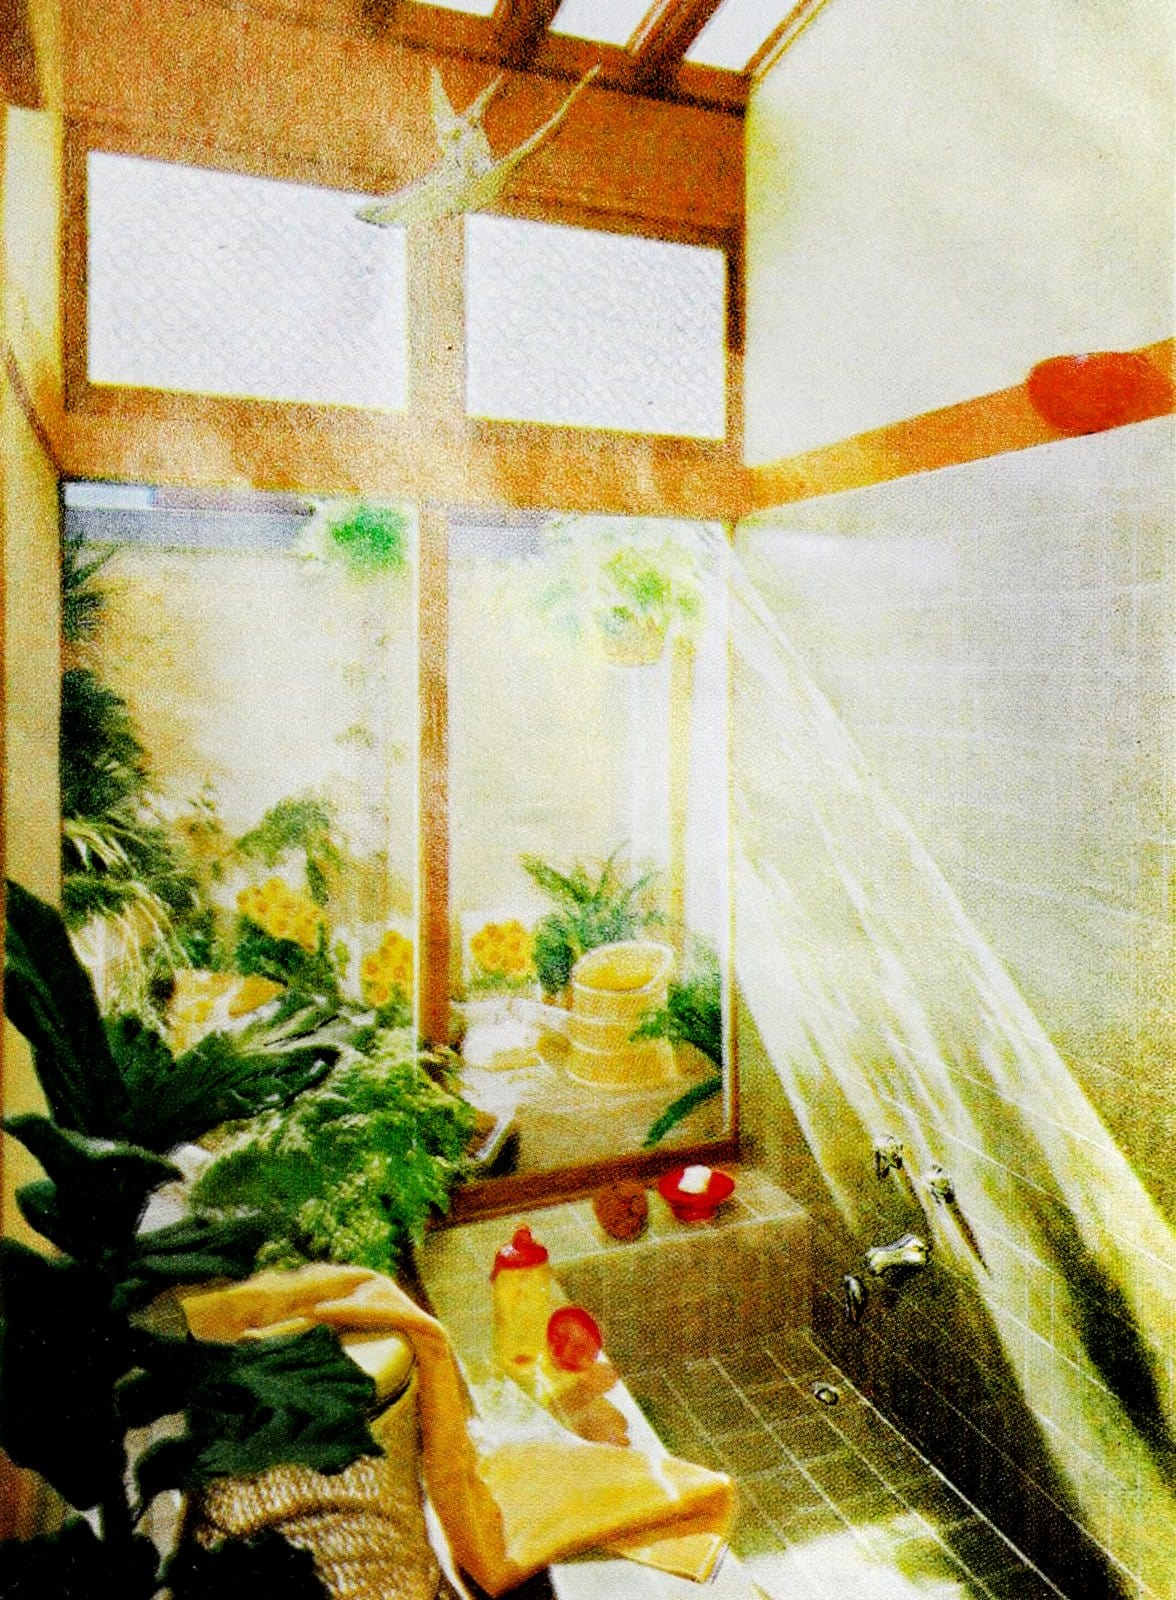 Sunny garden-style bath with plants and tiled open shower (1962)